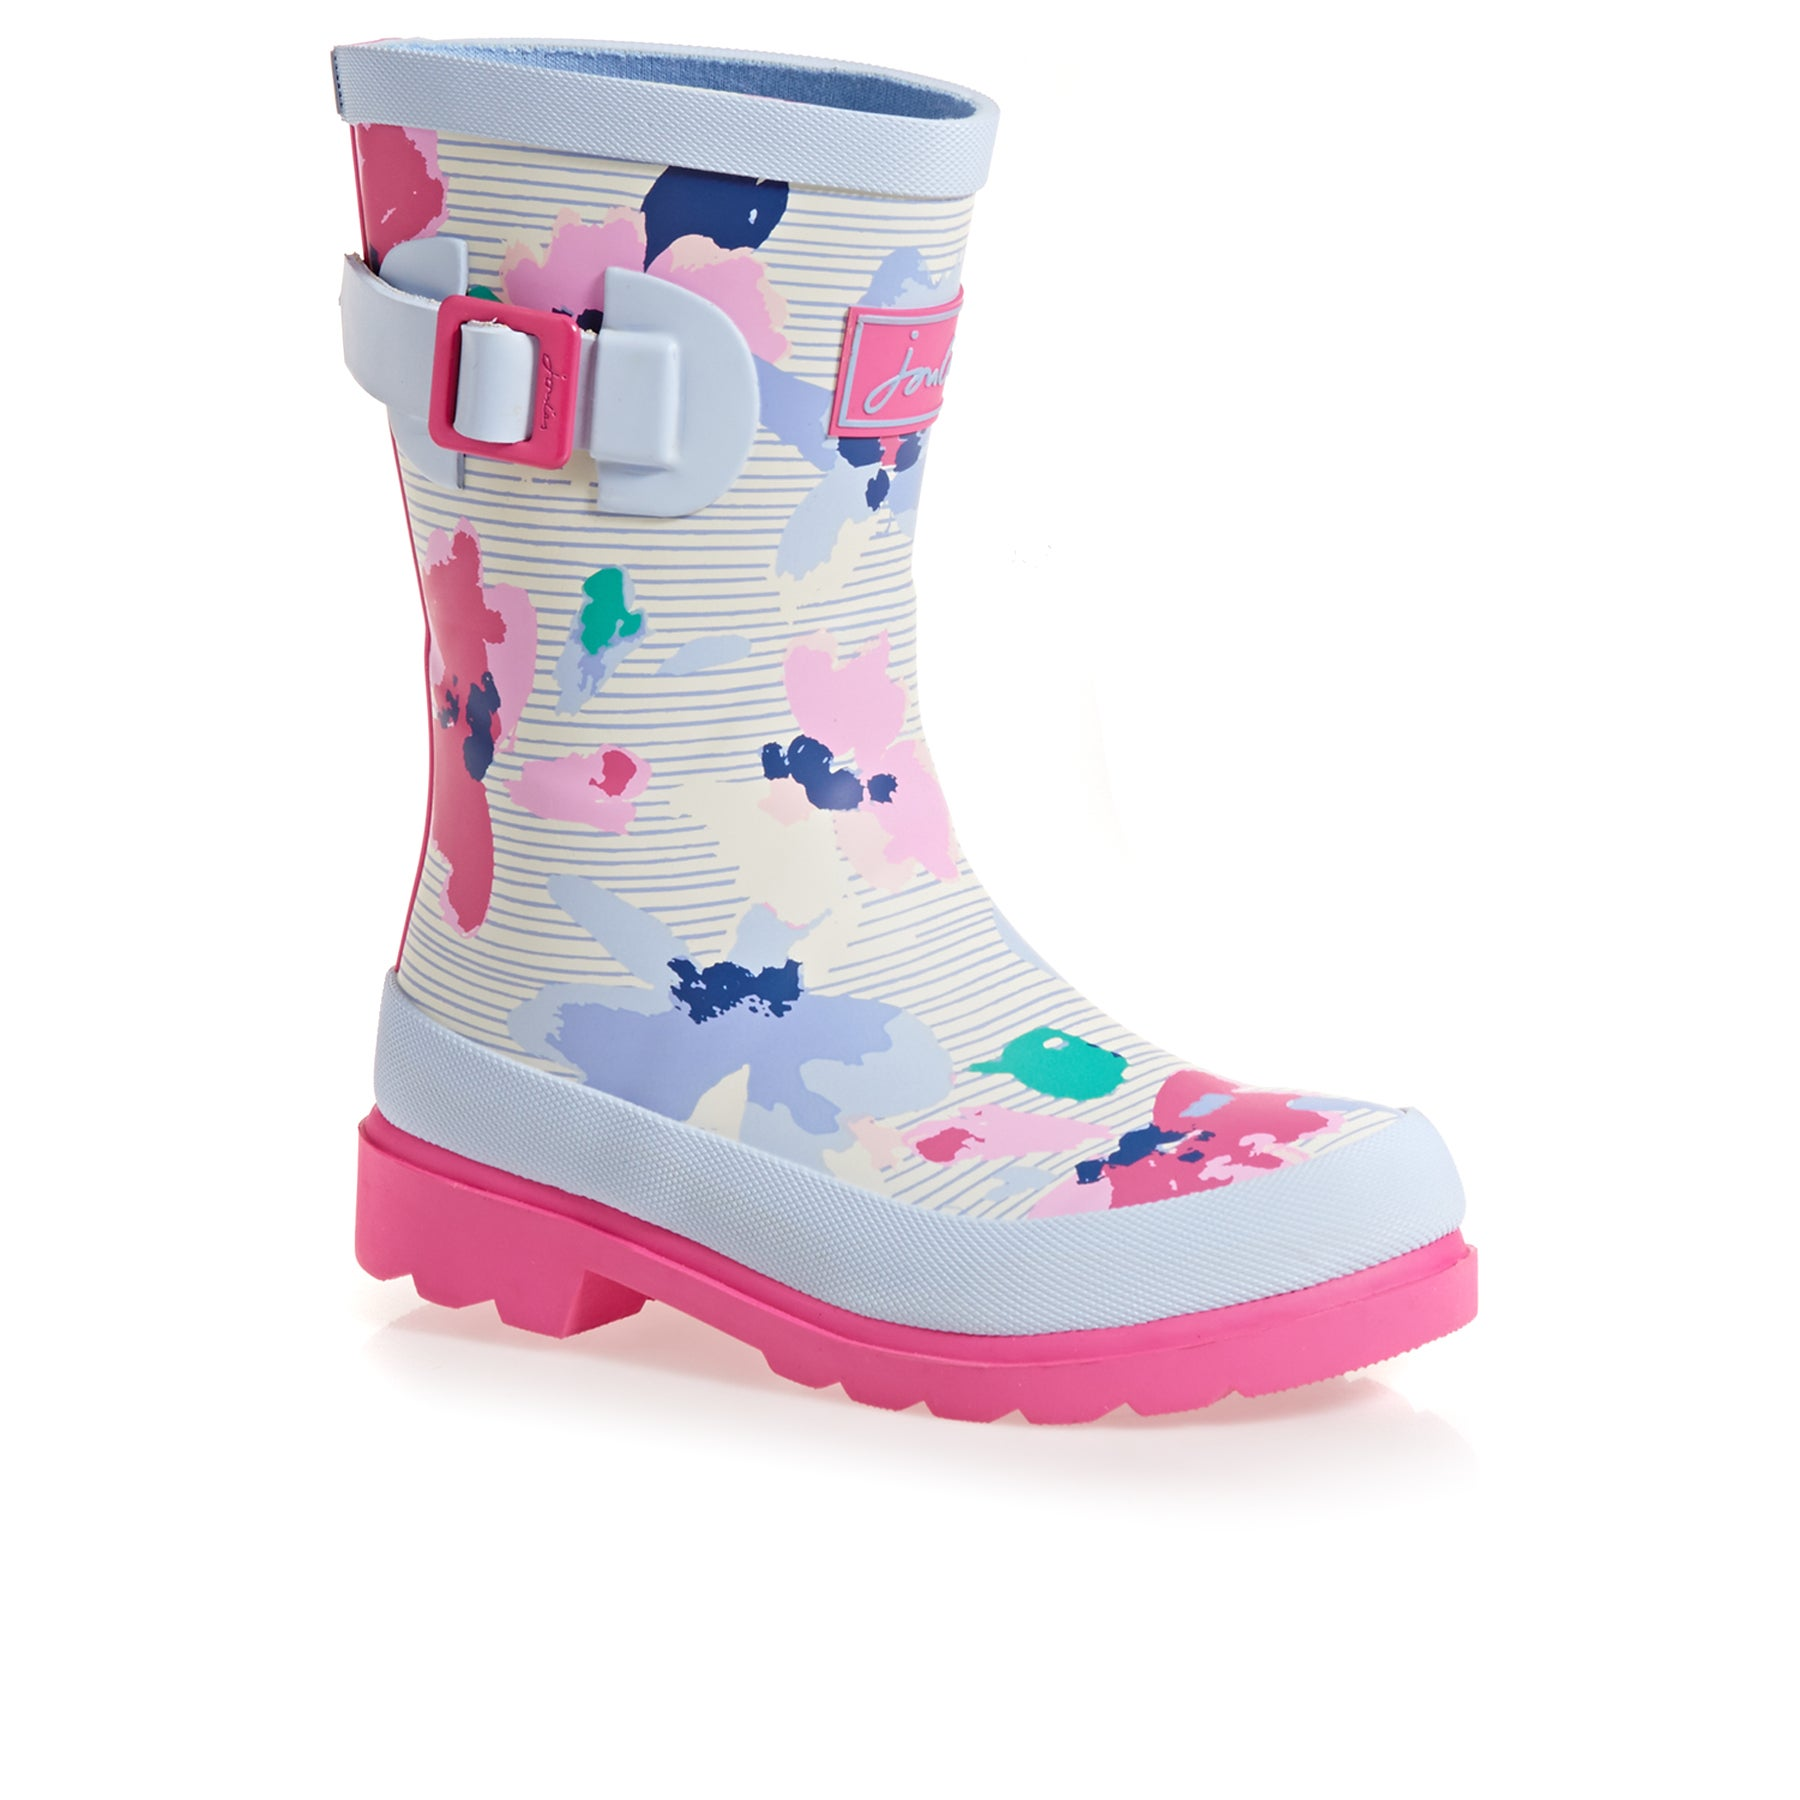 Joules Junior Girls Wellies - Lily Pond Stripe